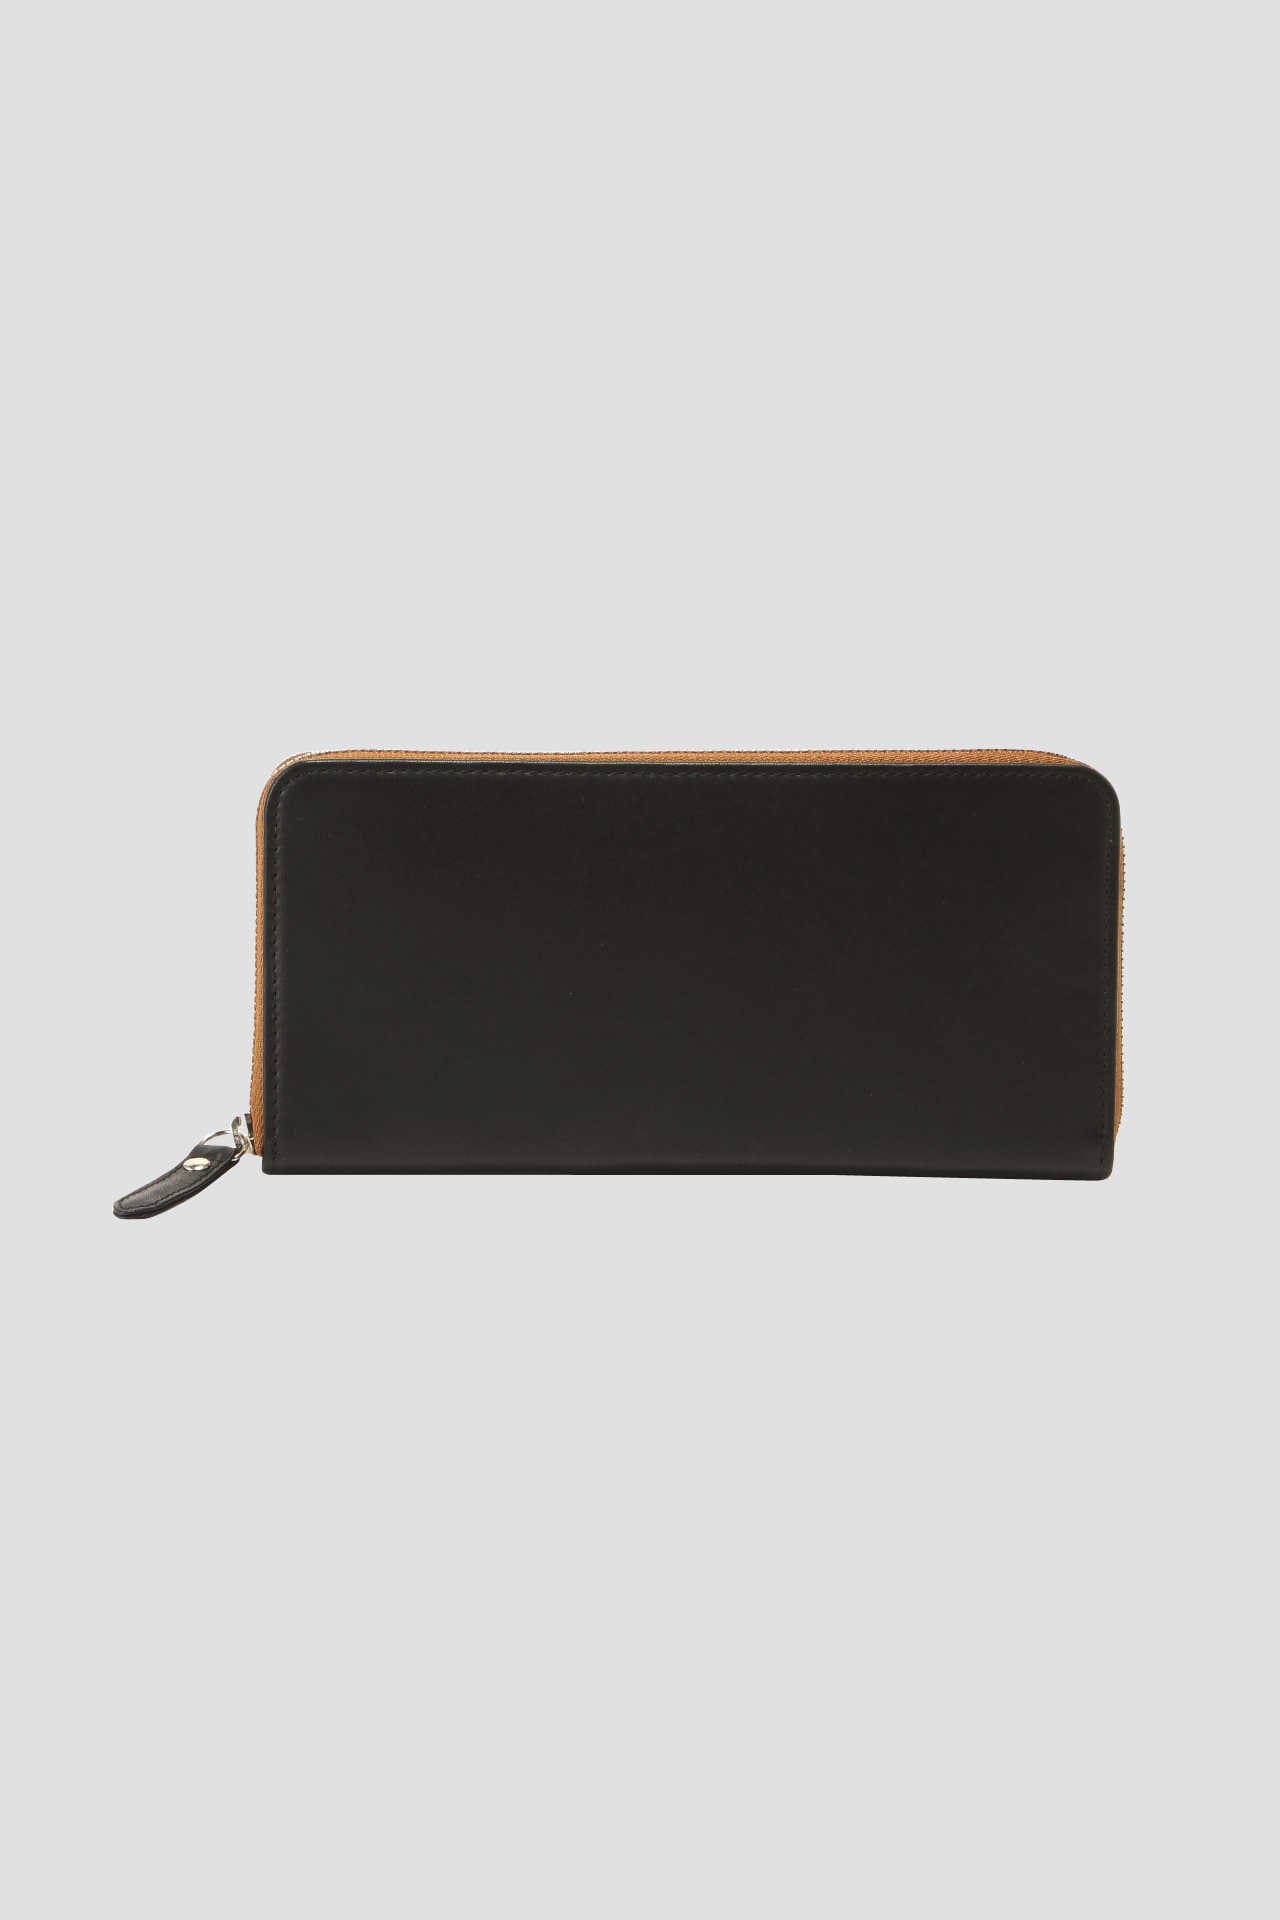 GRAIN LEATHER WALLET6